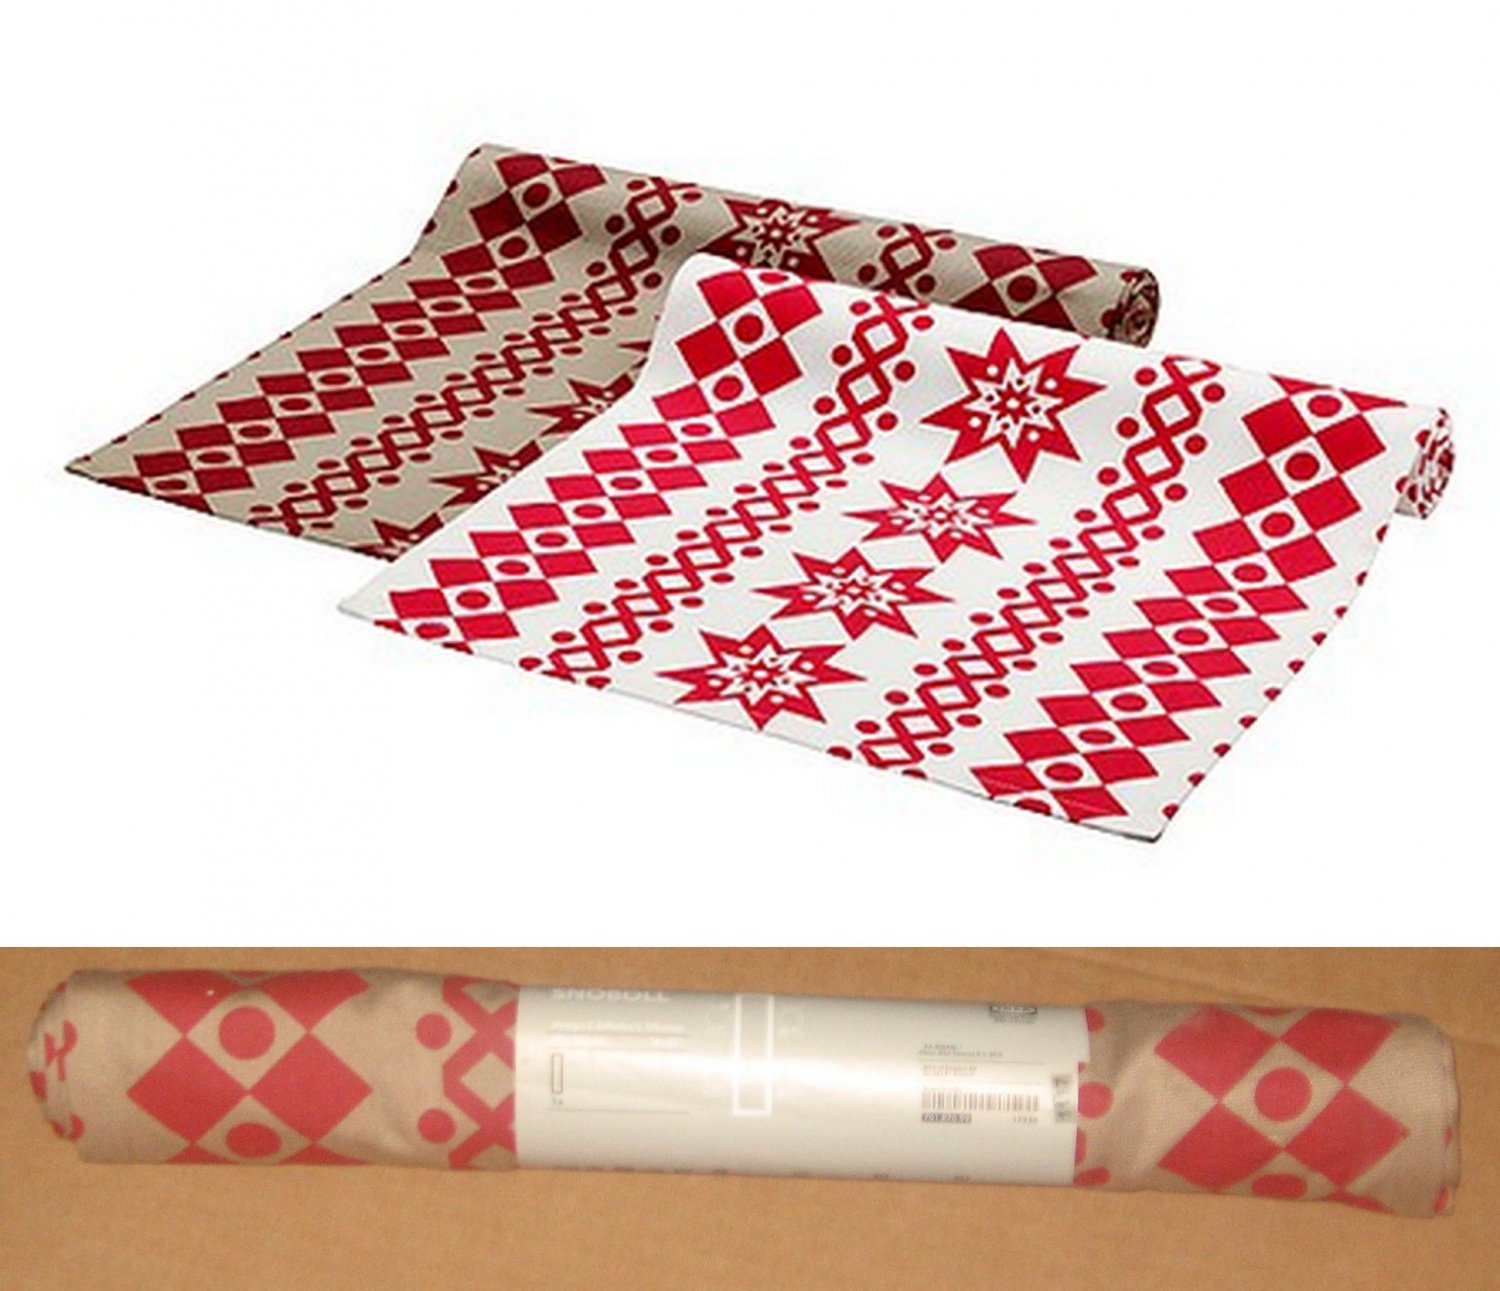 "IKEA SN�BOLL TABLE RUNNER RED Beige 98"" x 16"" Cotton SNOBOLL Xmas"